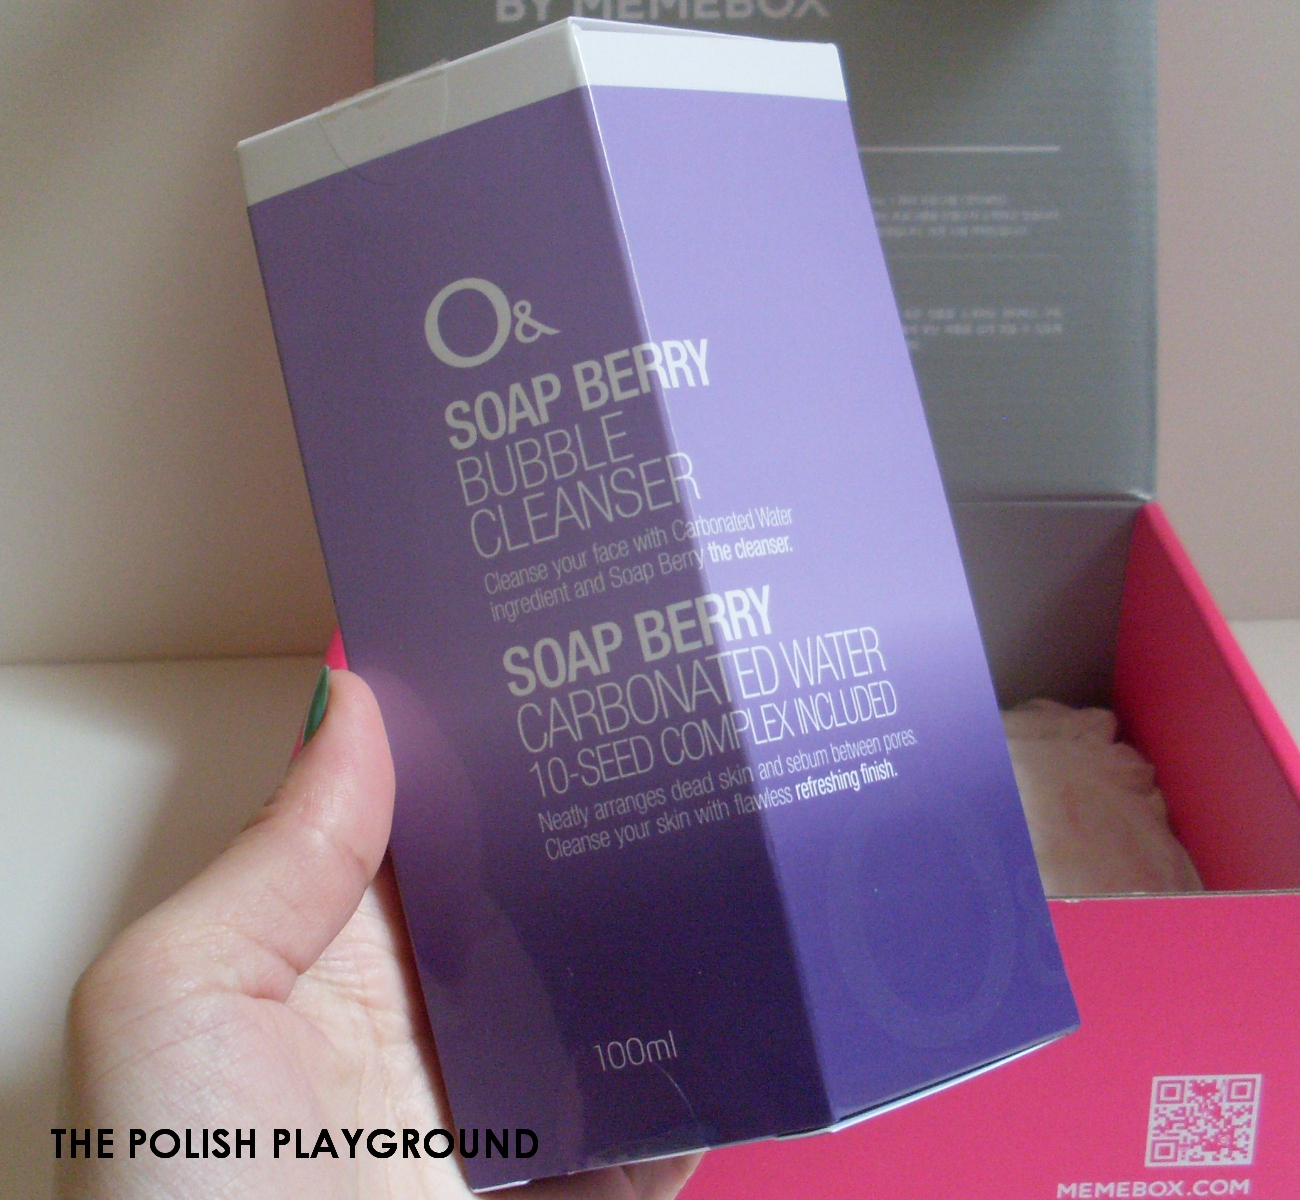 Memebox Luckybox #5 Unboxing - O& Soap Berry Bubble Cleanser